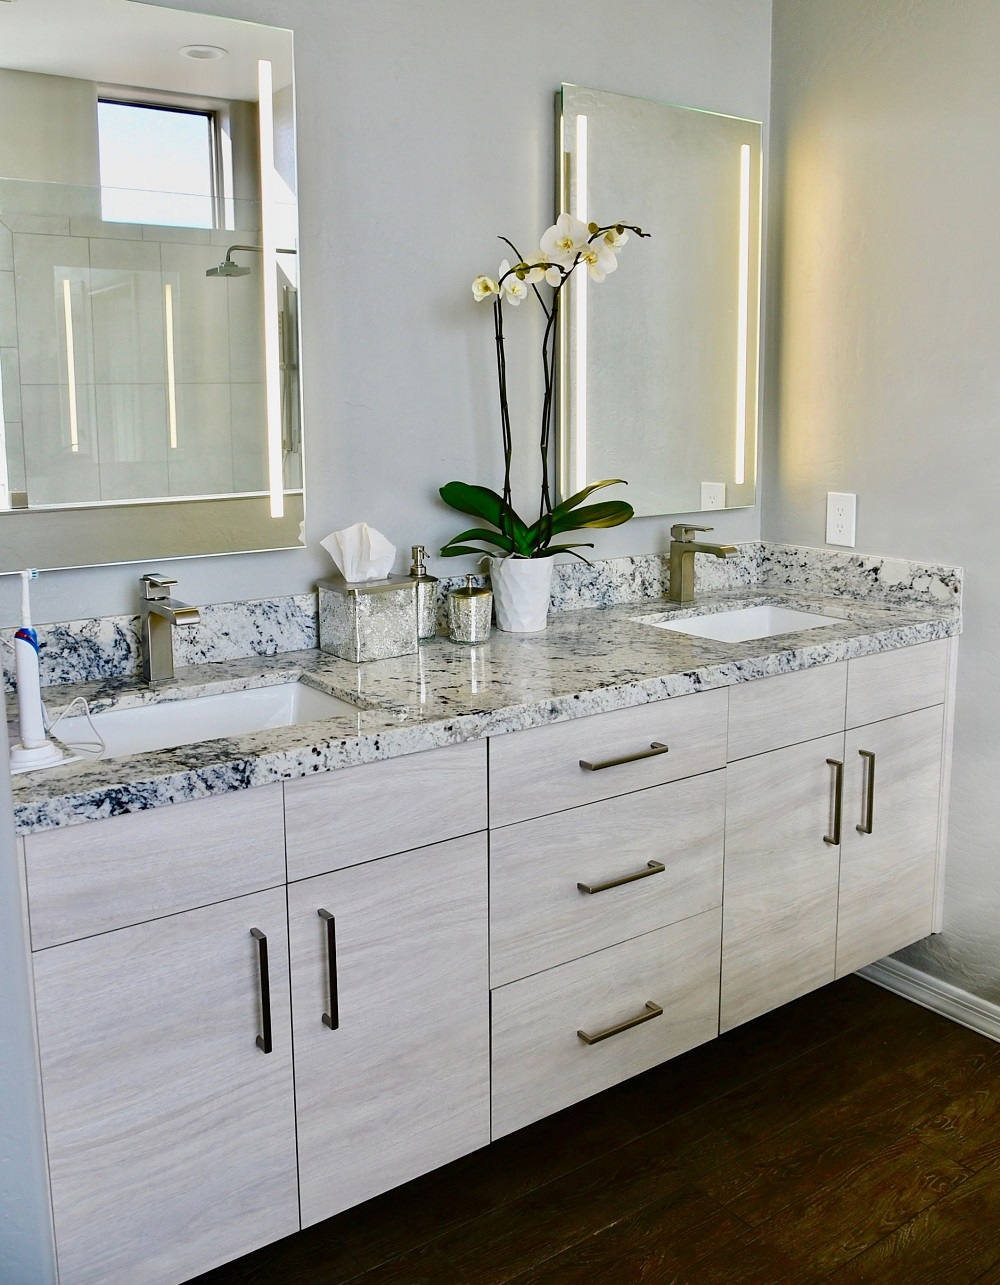 White Ice Granite Countertops Inspiration And Tips For Using Them